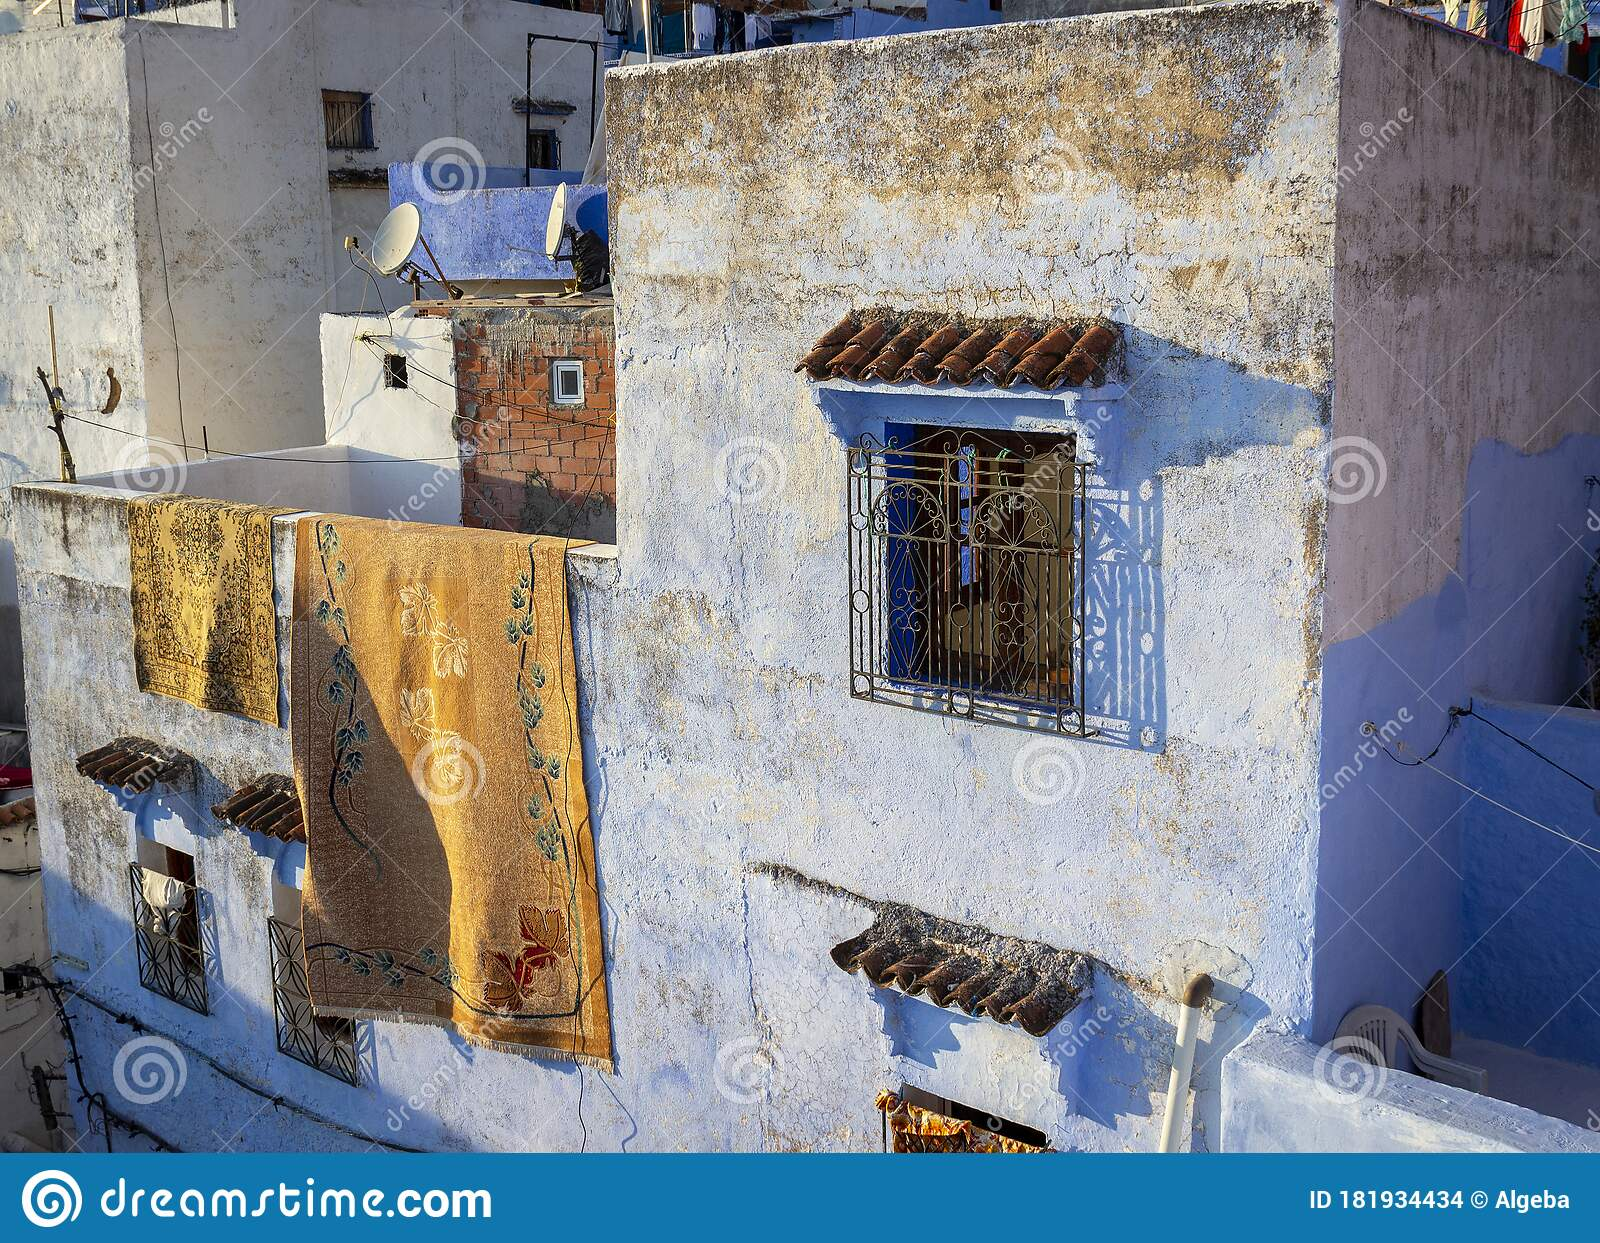 Image of: Carpet Draped Over Blue Wall Stock Photo Image Of Arabic Bazaar 181934434